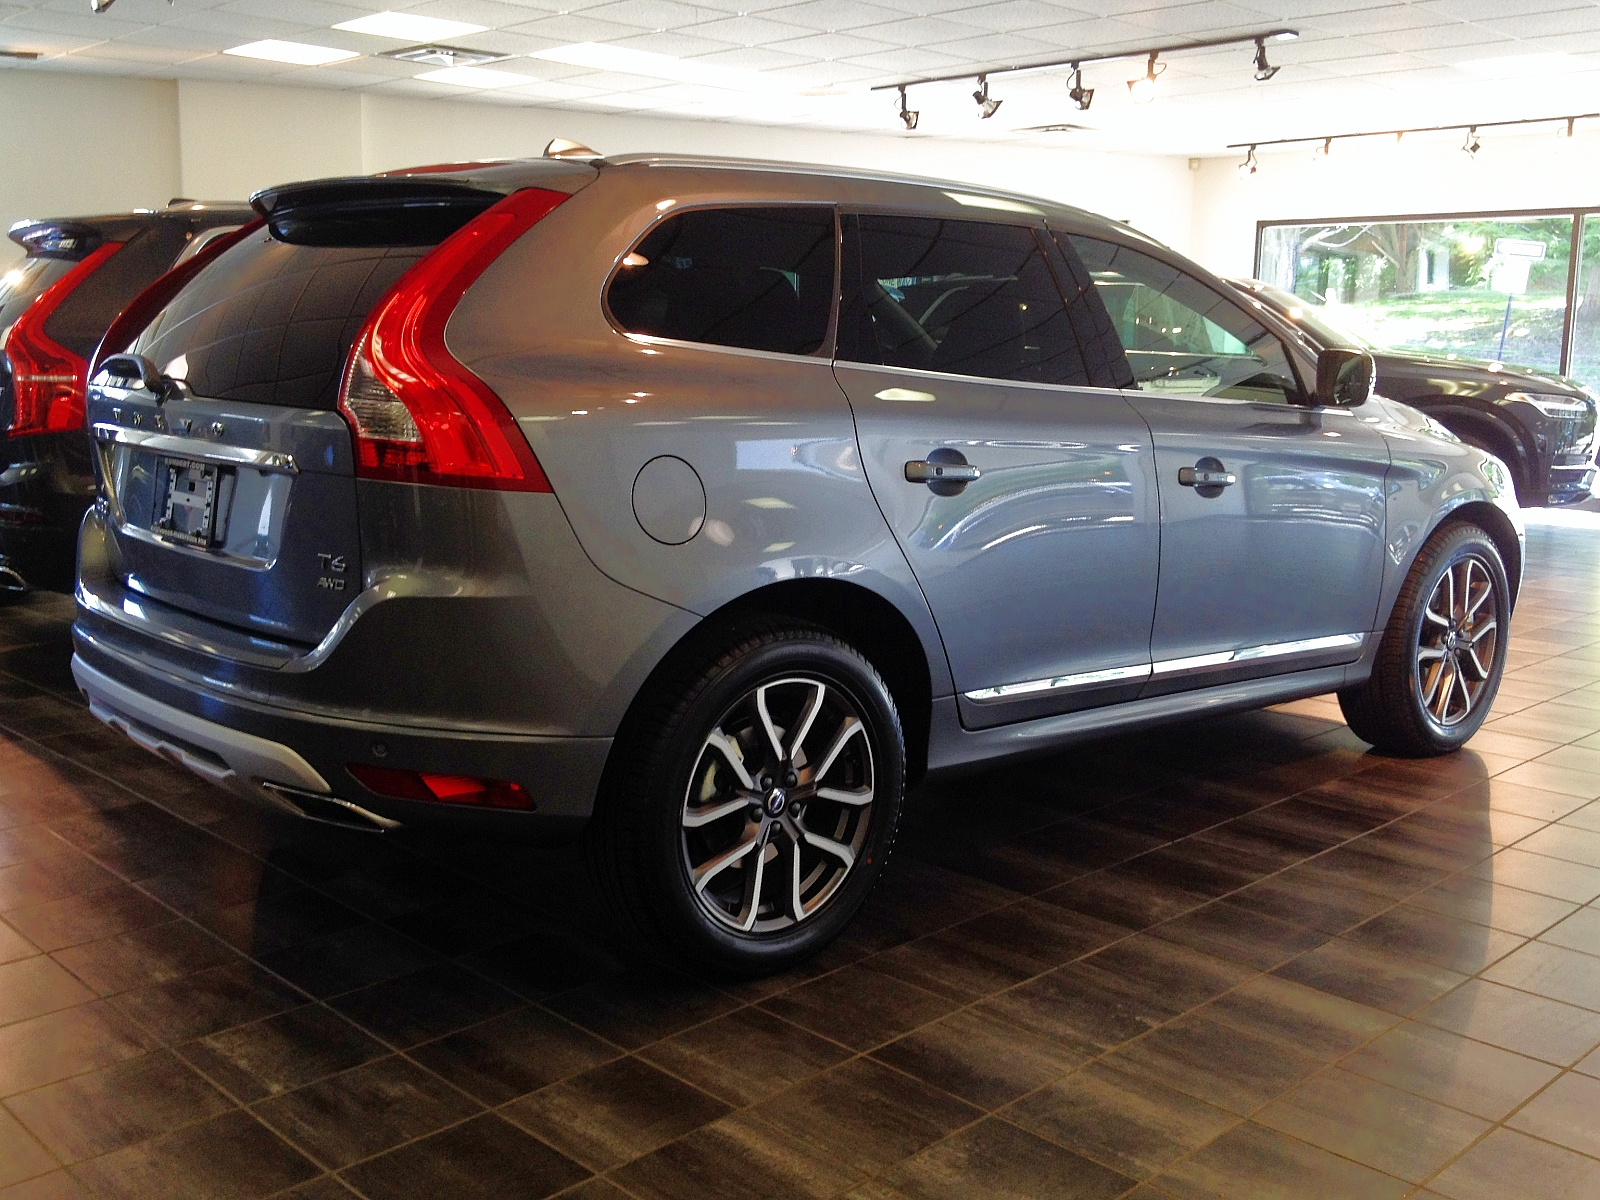 volvo image gallery 2017 volvo xc60 t6 awd dynamic in osmium grey. Black Bedroom Furniture Sets. Home Design Ideas